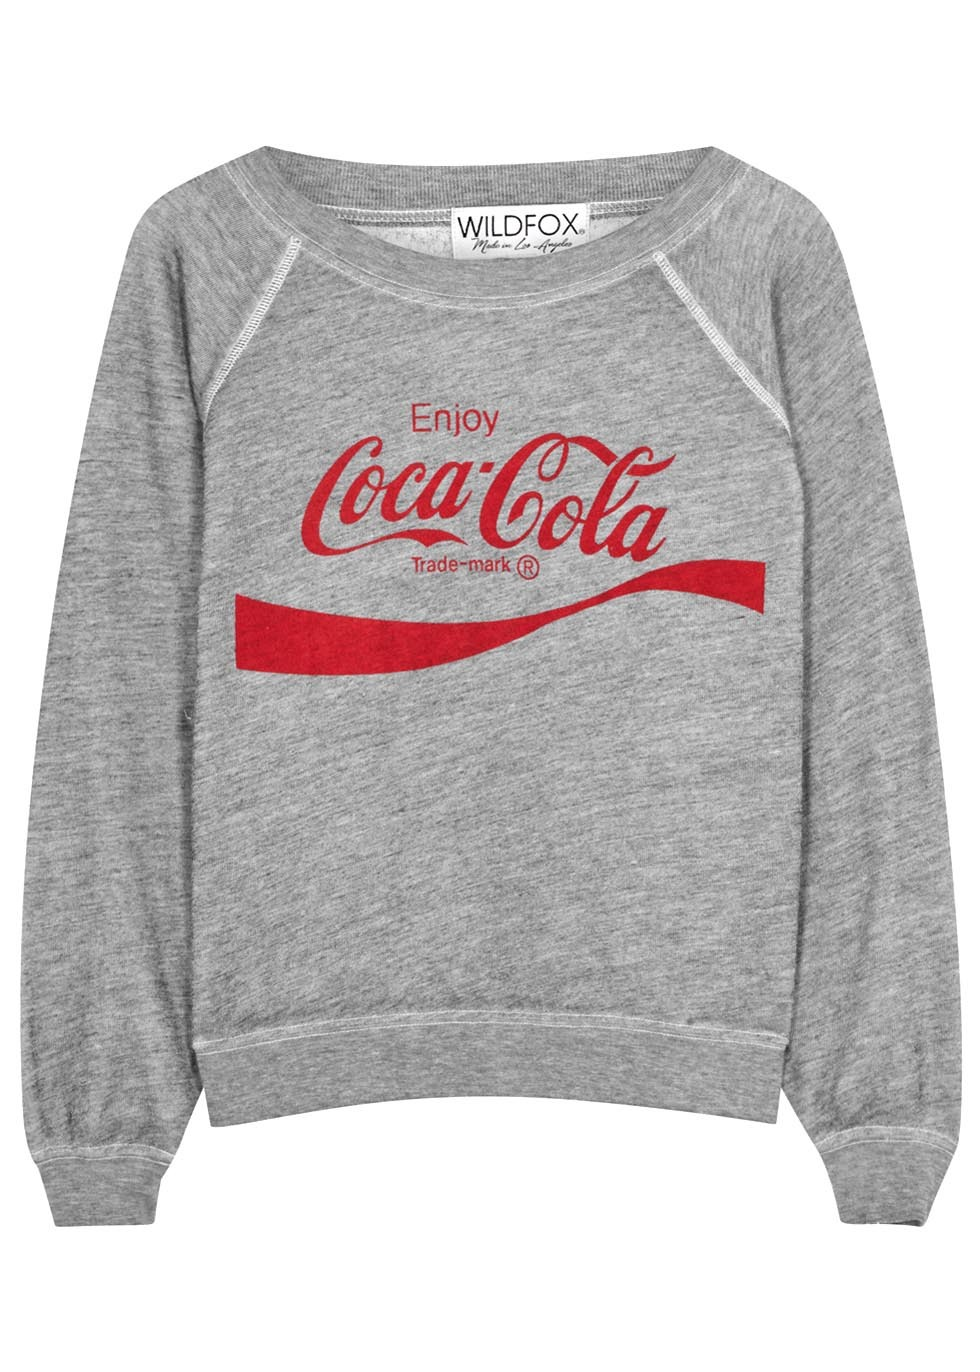 Coca Cola Kim's Printed Jersey Sweatshirt - neckline: round neck; style: sweat top; secondary colour: true red; predominant colour: light grey; occasions: casual; length: standard; fibres: polyester/polyamide - mix; fit: body skimming; sleeve length: long sleeve; sleeve style: standard; pattern type: fabric; texture group: jersey - stretchy/drapey; pattern: graphic/slogan; multicoloured: multicoloured; season: s/s 2016; wardrobe: highlight